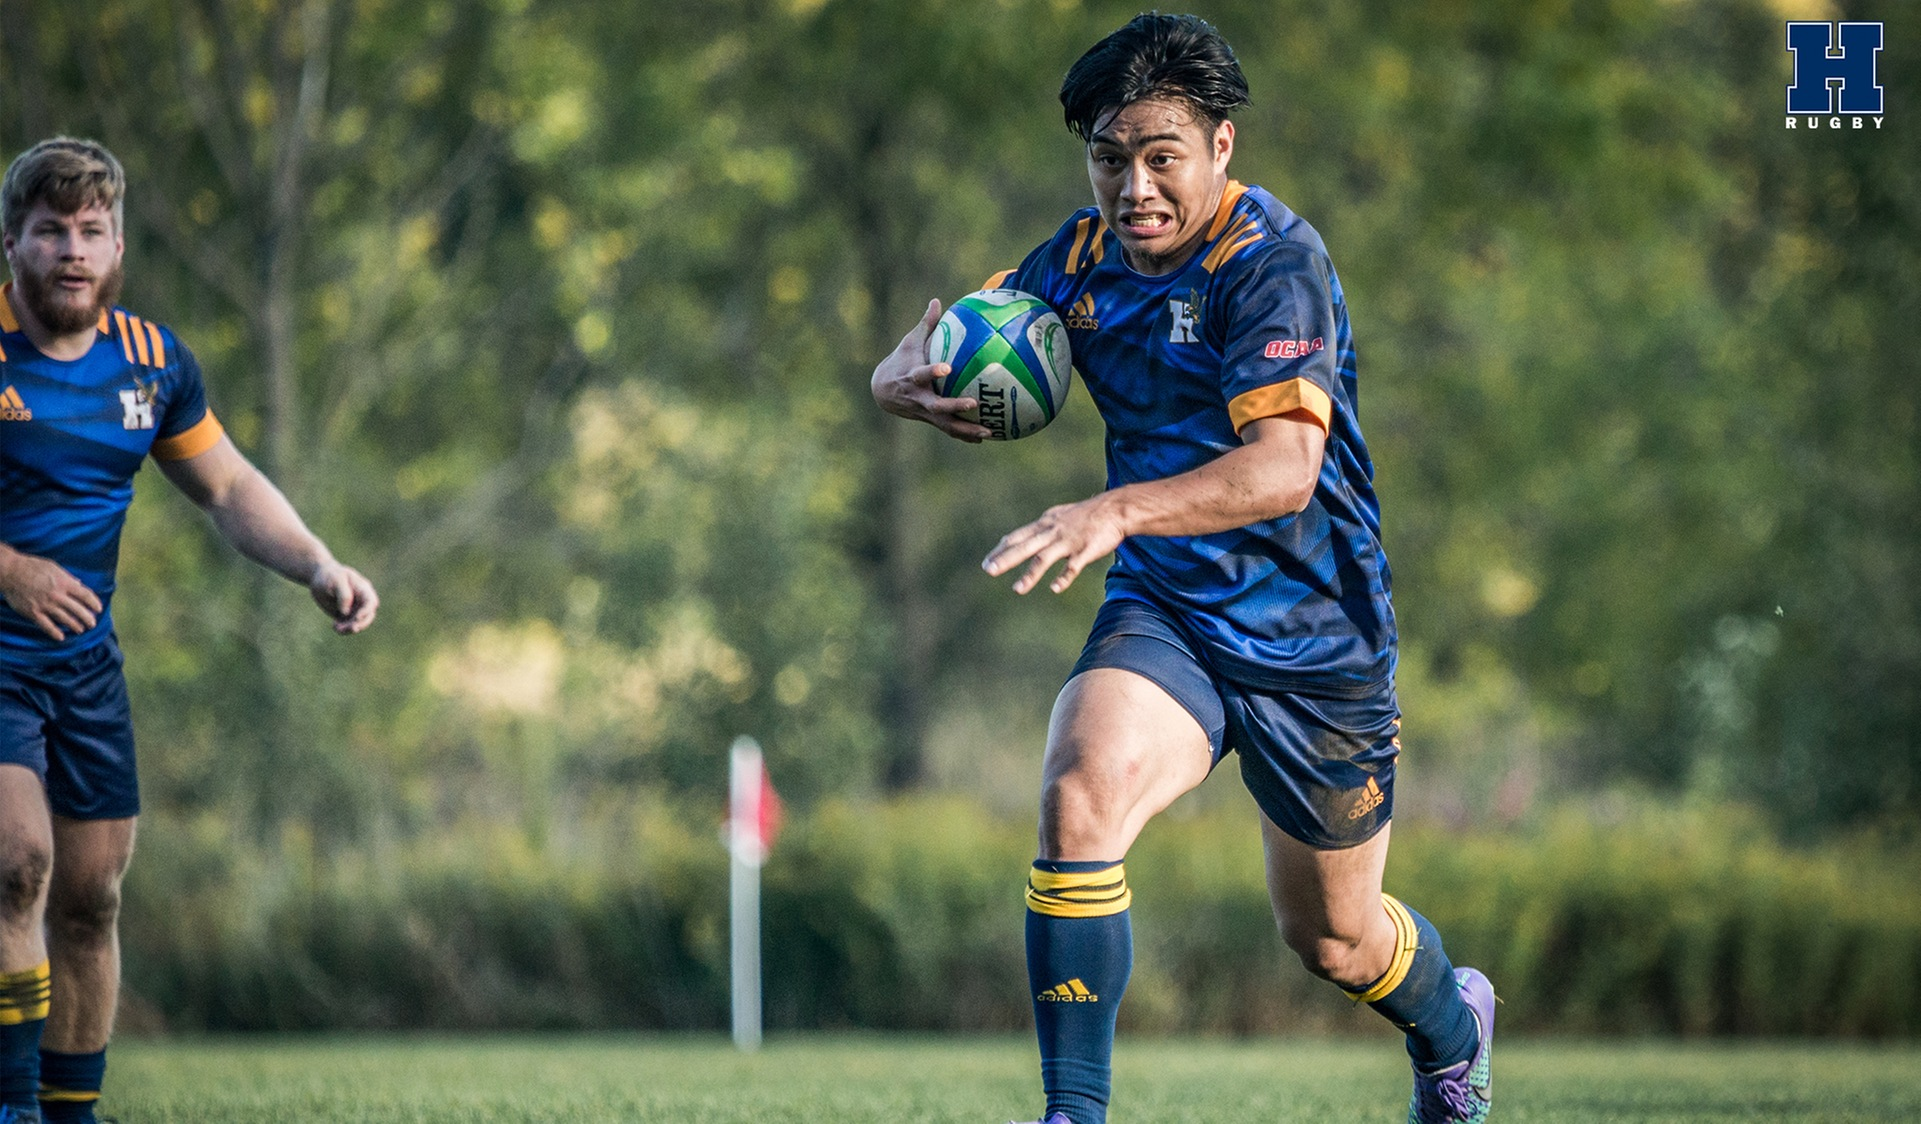 Humber Rugby Earns Playoff Spot With Win Over Conestoga